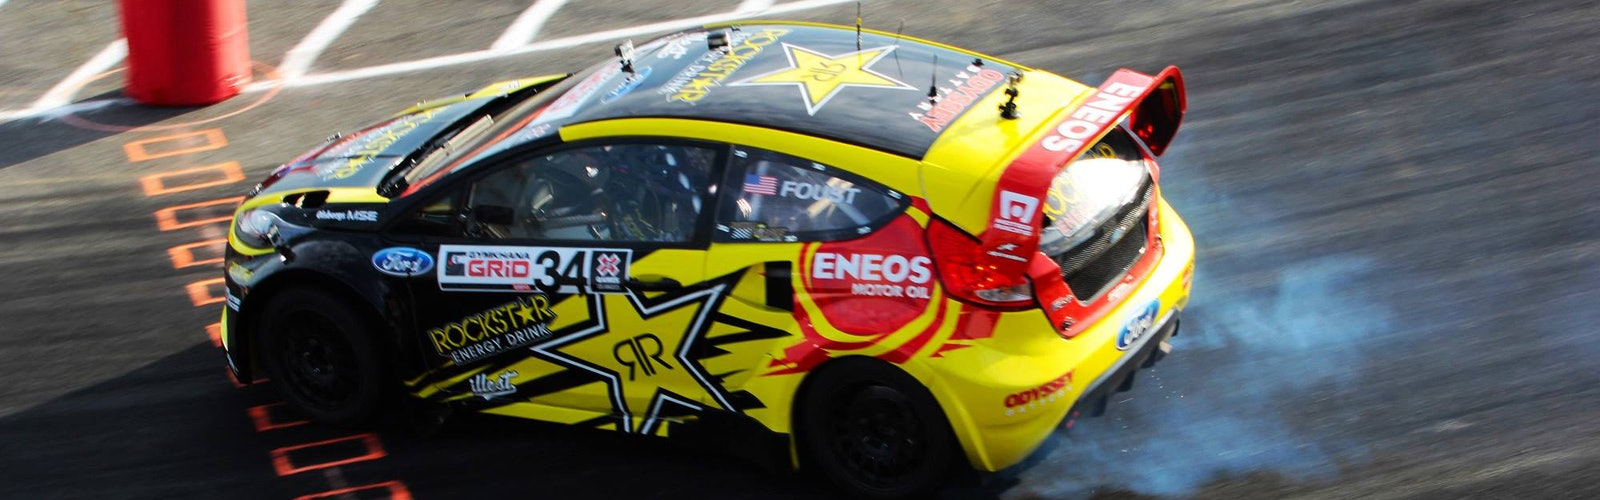 Tanner Foust, Ford Fiesta, 2013 X Games Los Angeles, Gymkhana